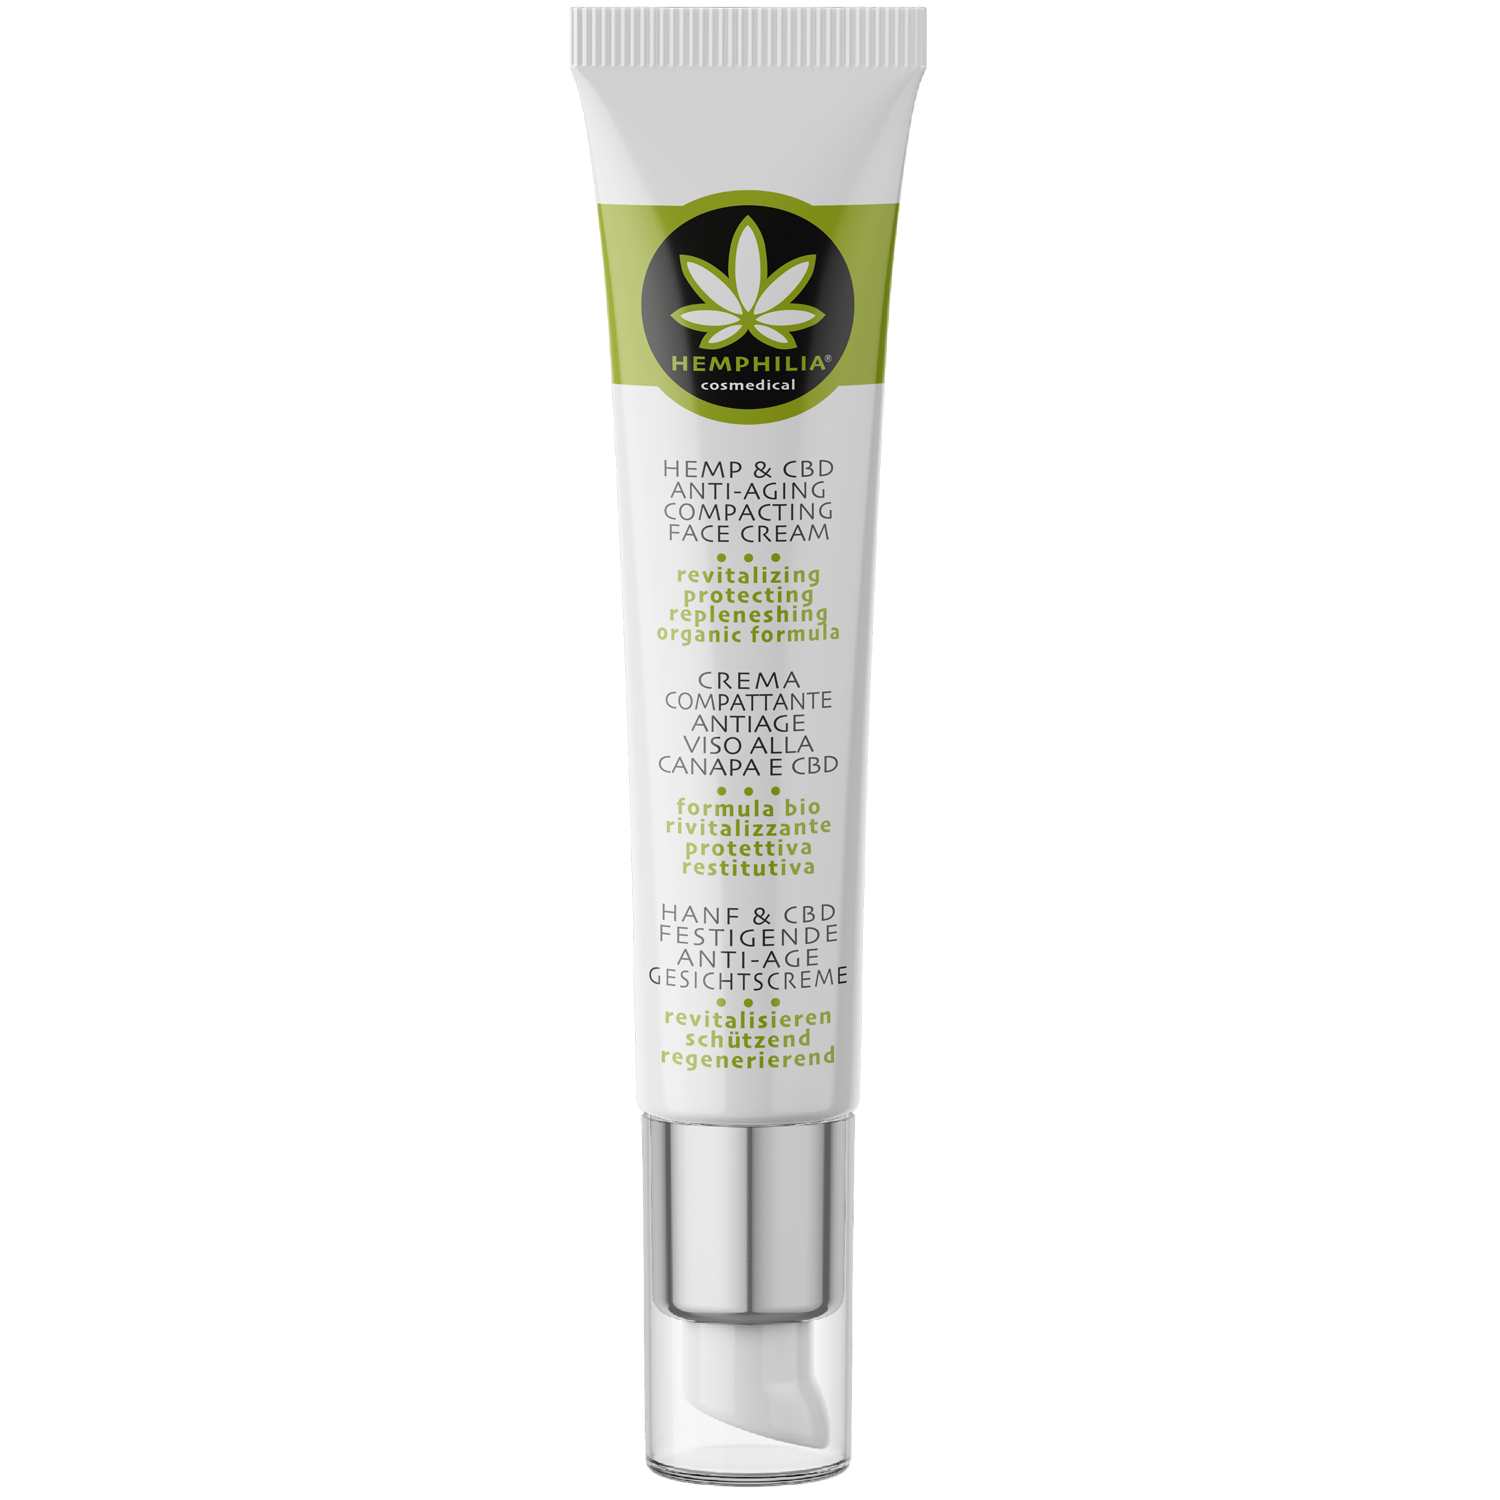 Hemp & CBD Anti-aging Compacting Face Cream